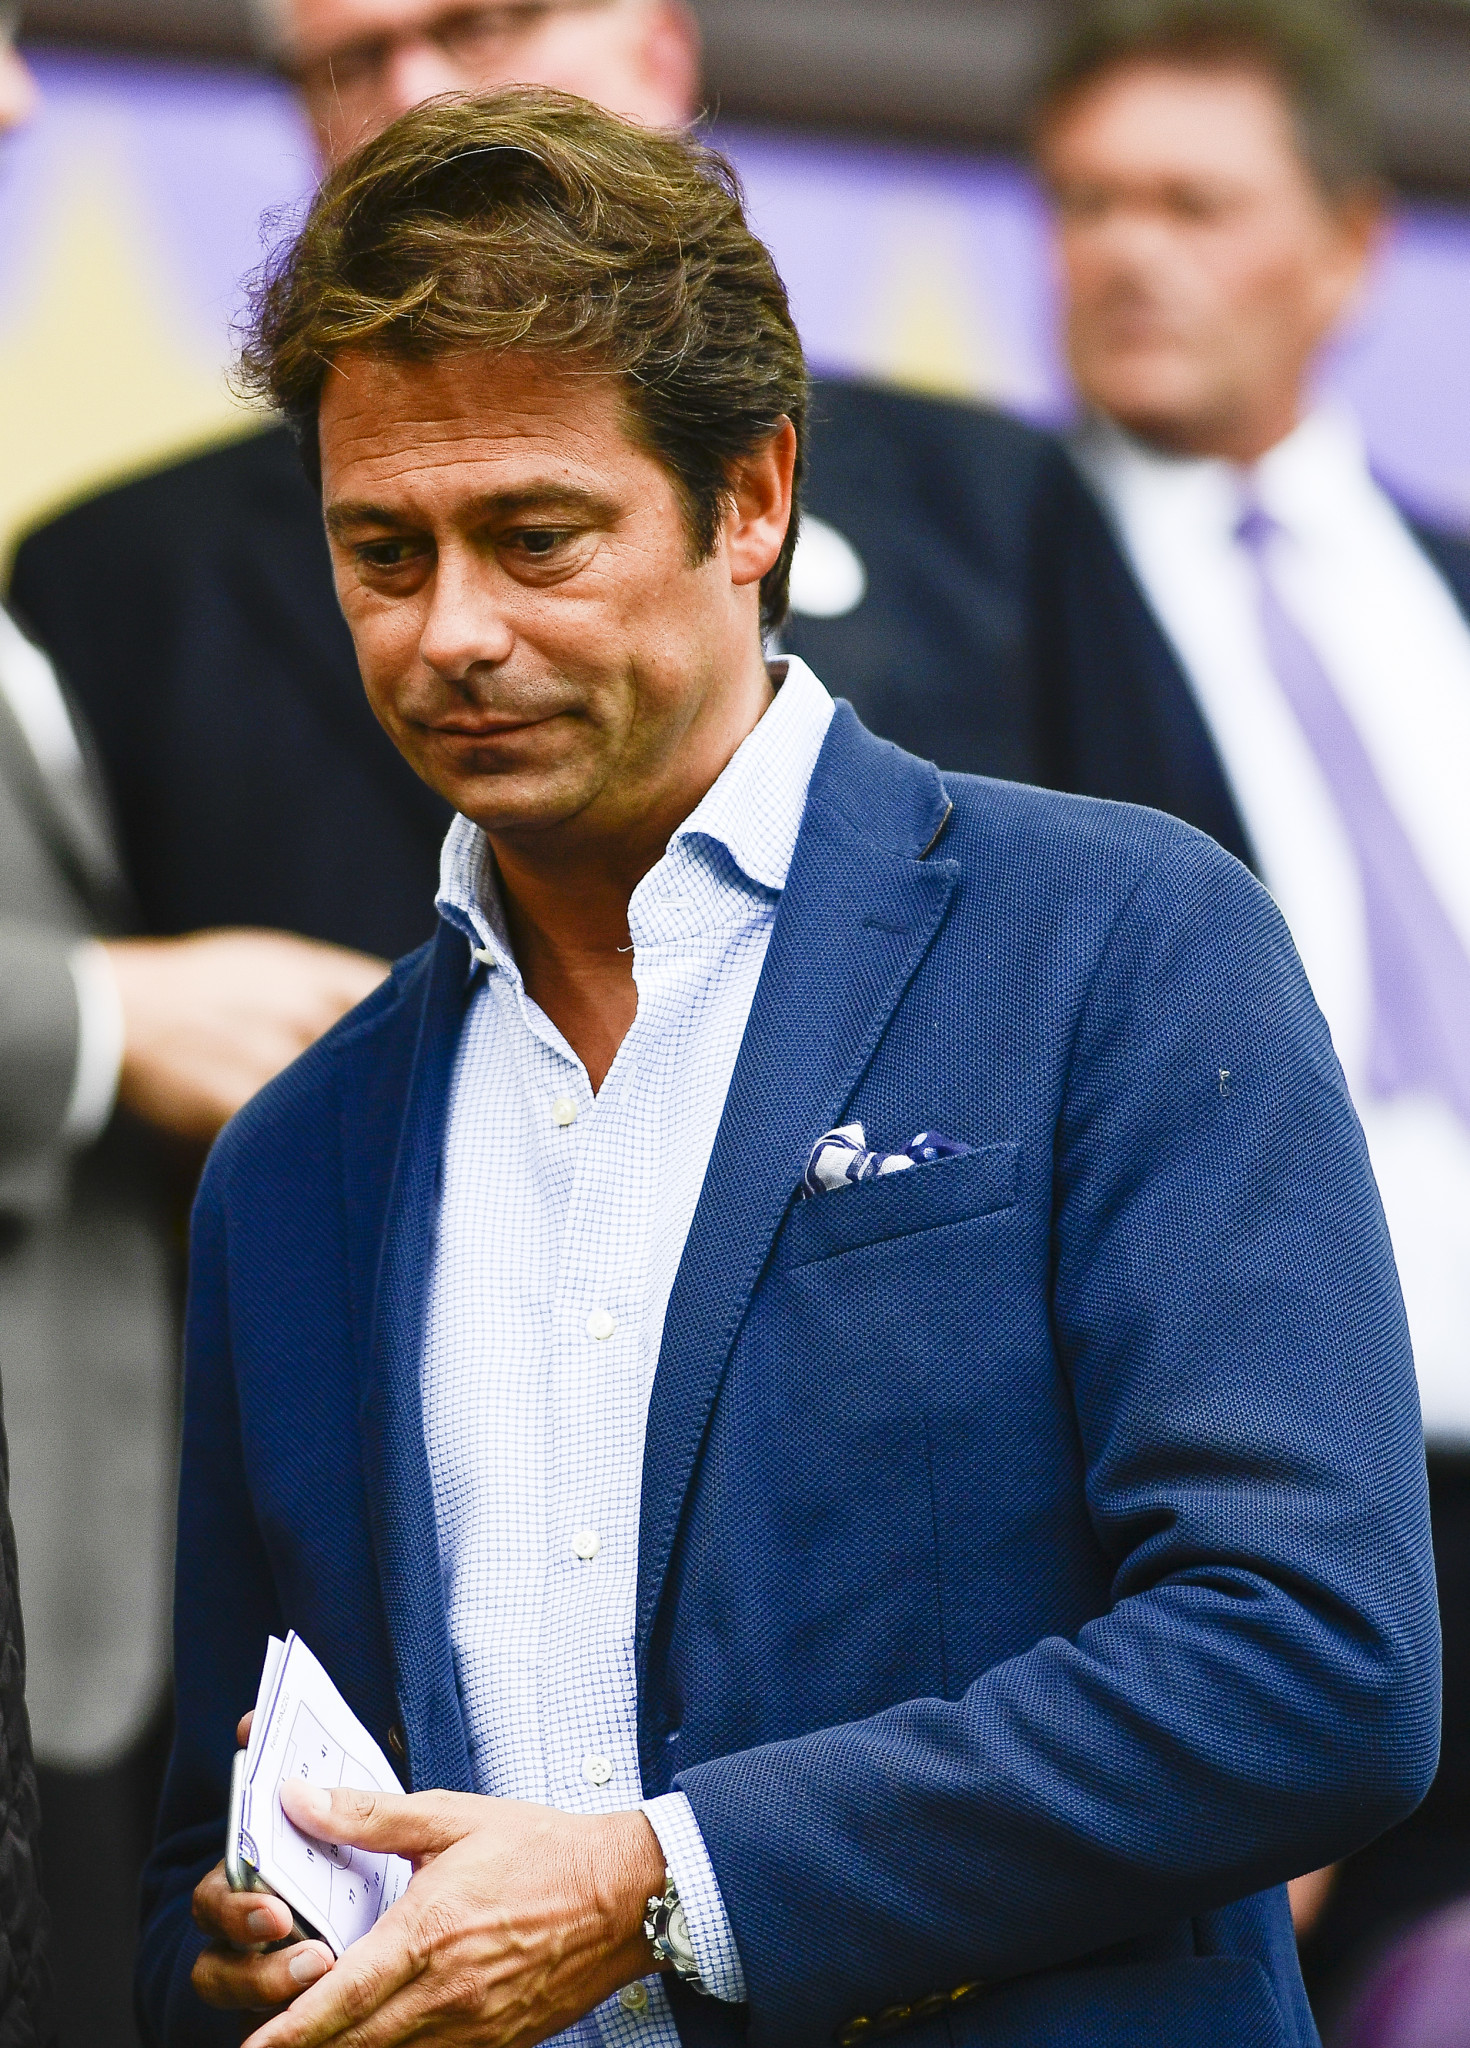 Belgian football agent arrested on corruption charges